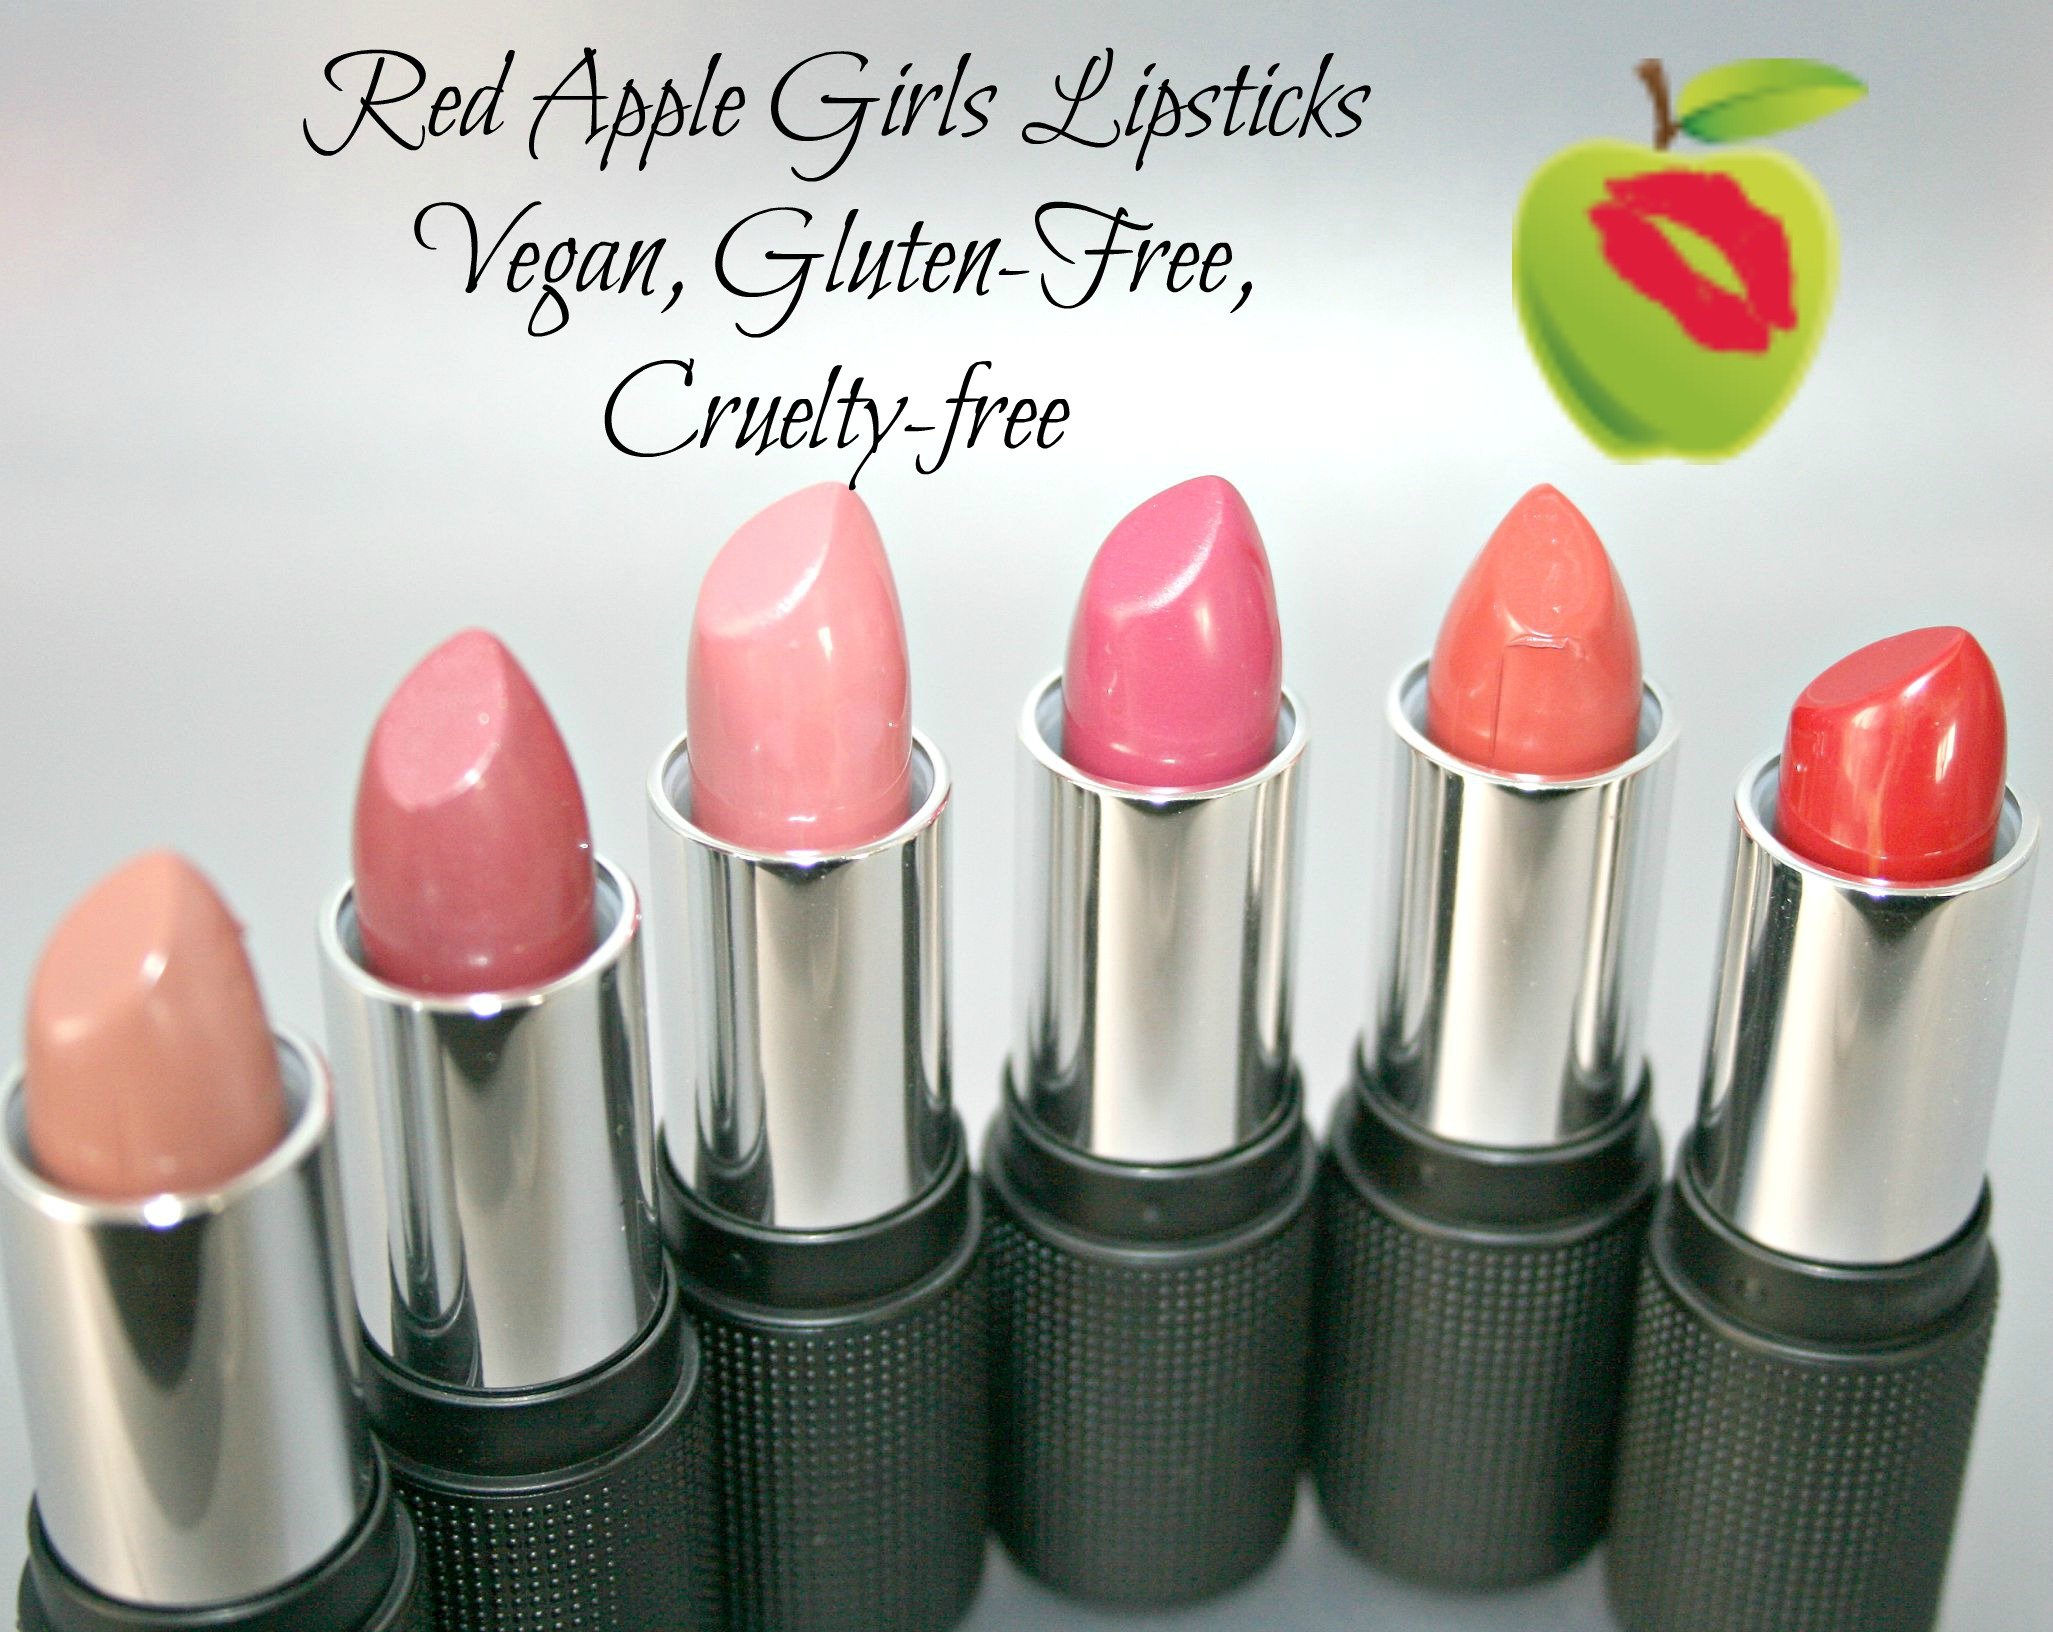 Brand Spotlight: Red Apple Girls